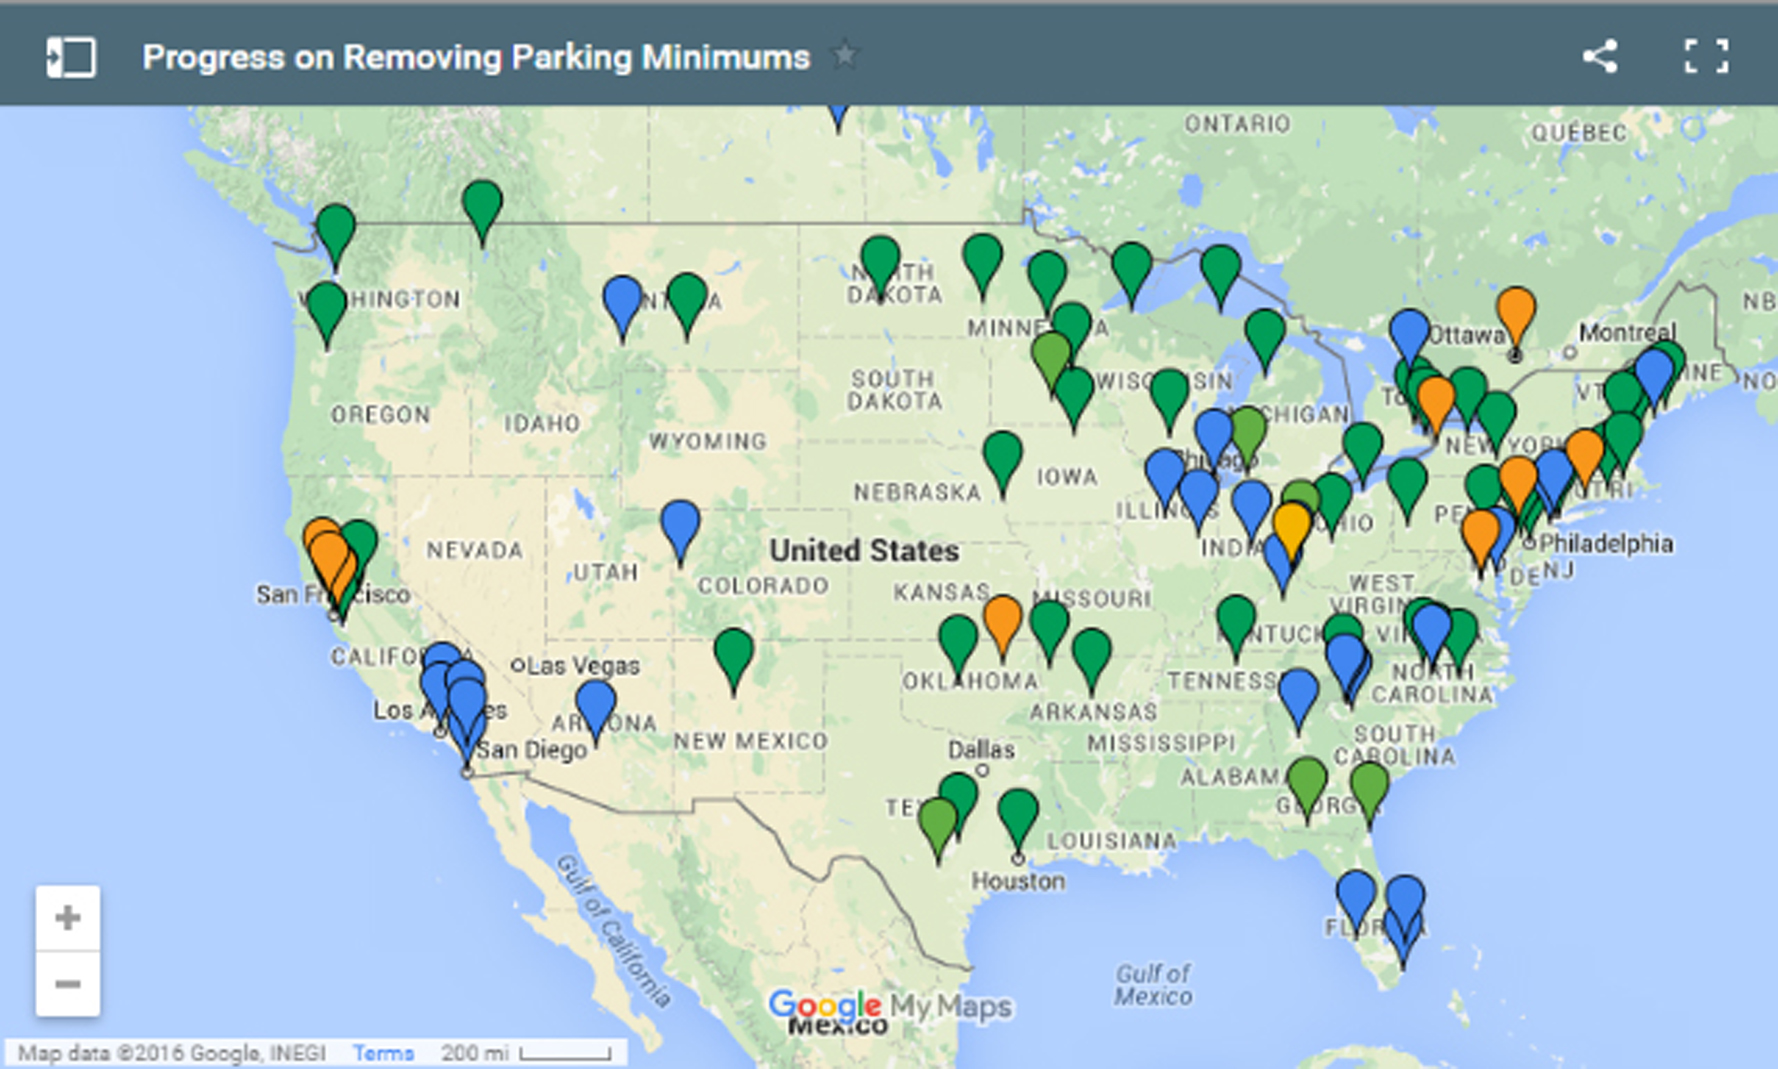 Strong_Towns_Parking_Reform_Map.jpg